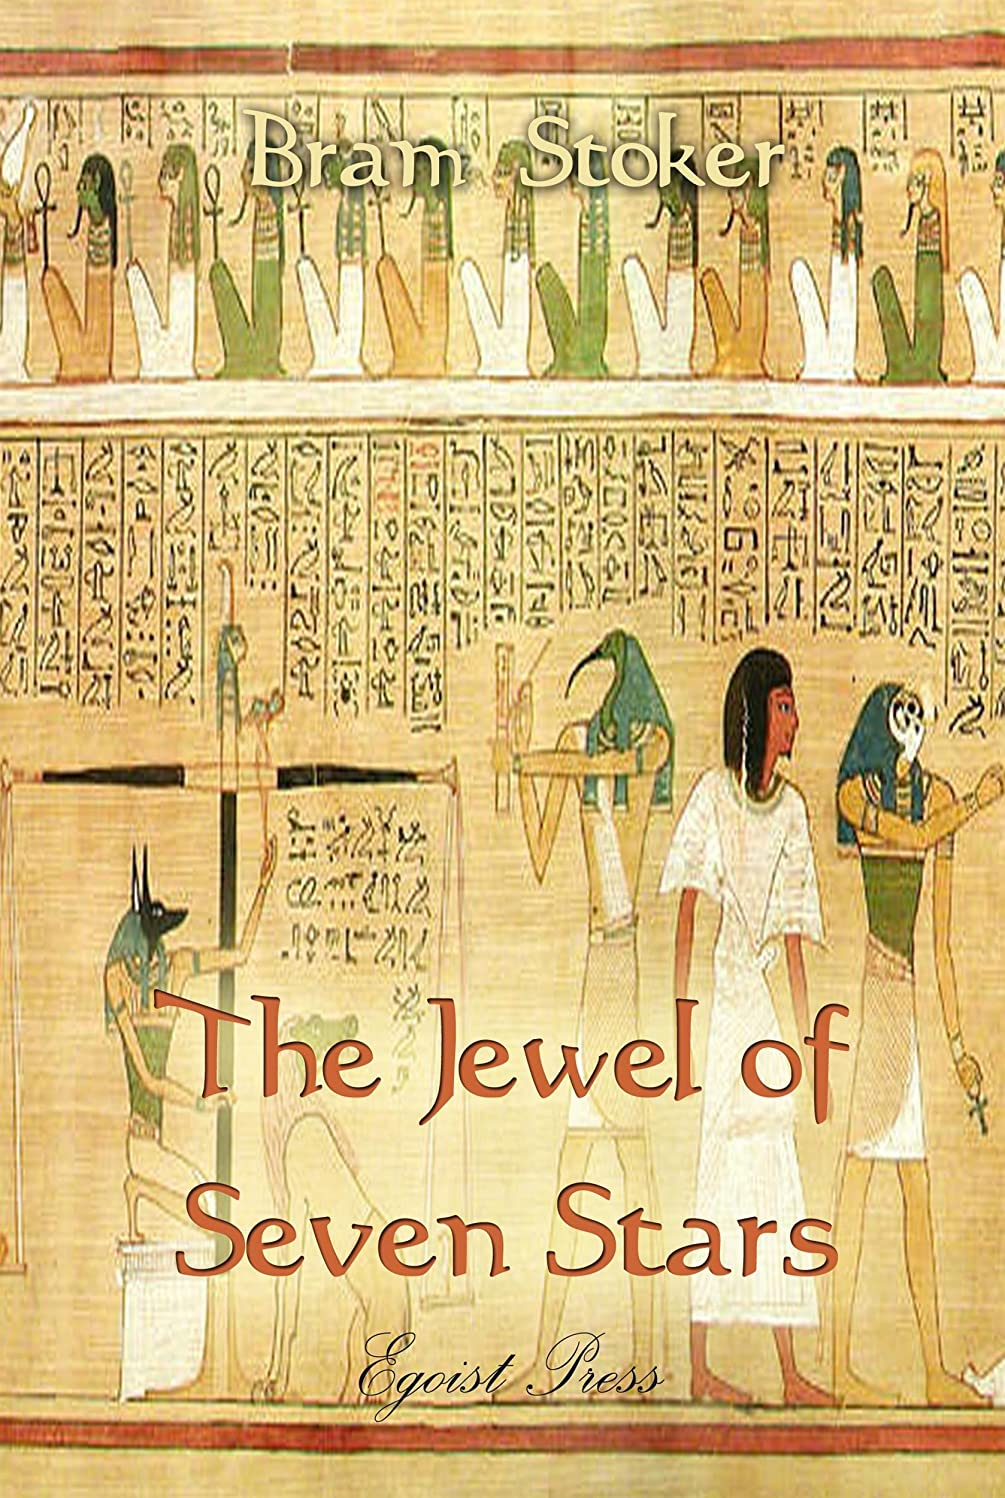 期限移植死ぬThe Jewel of Seven Stars (Timeless Classic) (English Edition)